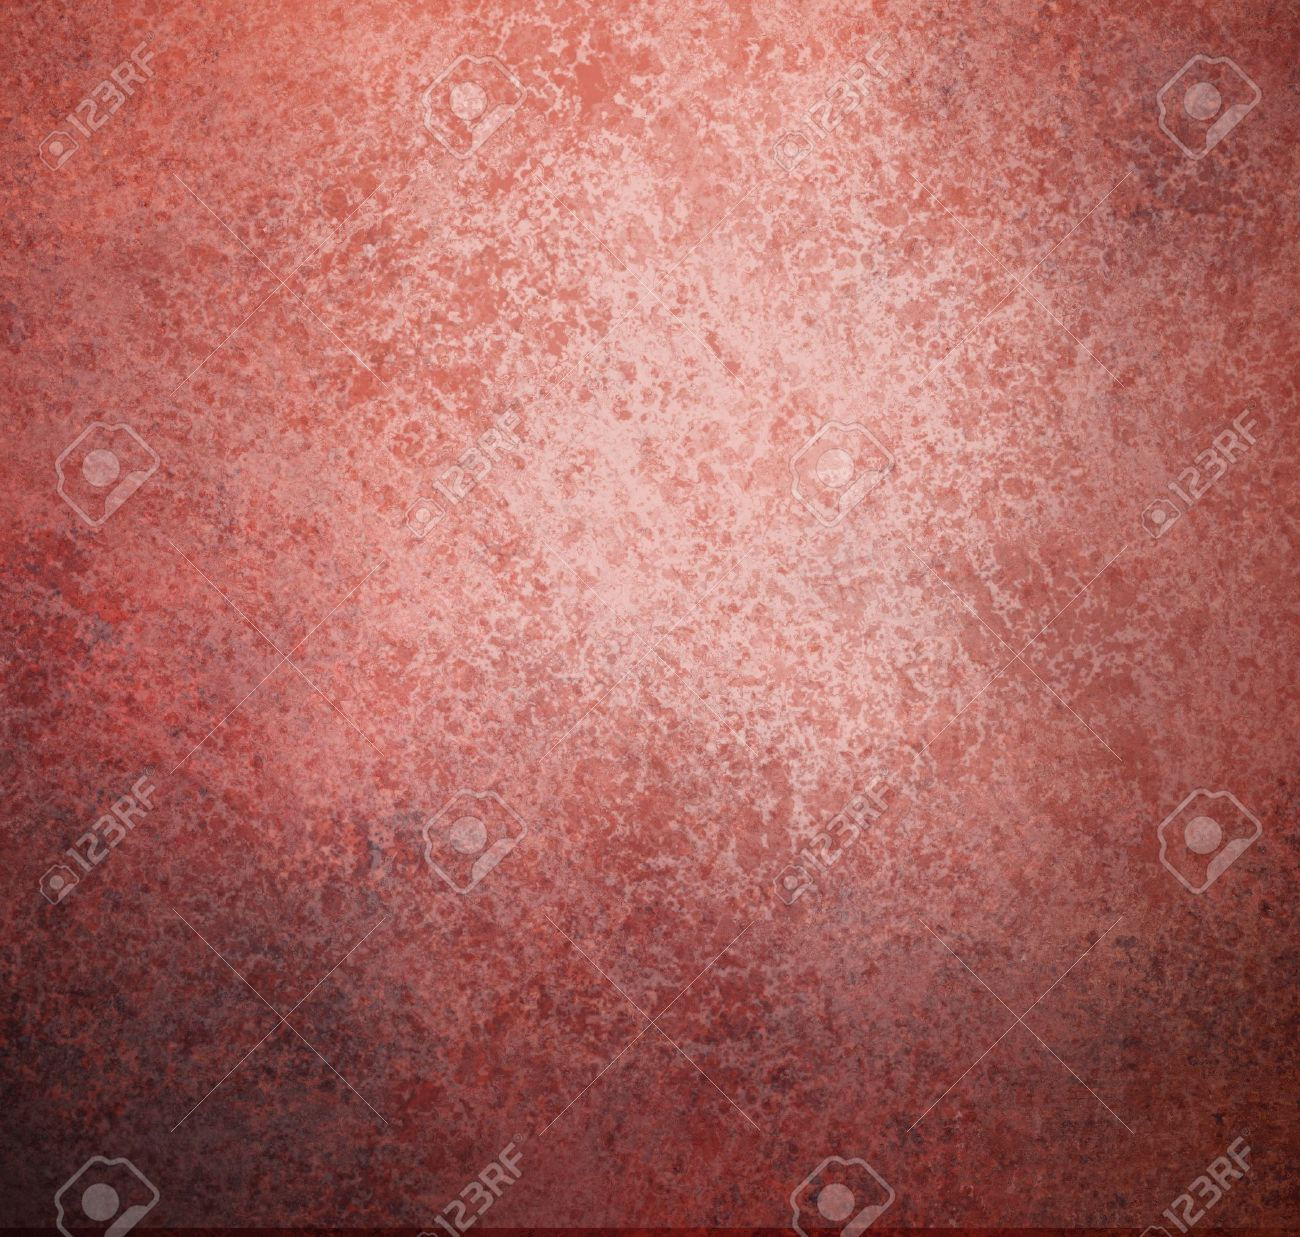 abstract pink background with red black vintage grunge background texture, grungy sponge design on border, red paper or red wallpaper for Christmas background or web template background or book cover Stock Photo - 15139253